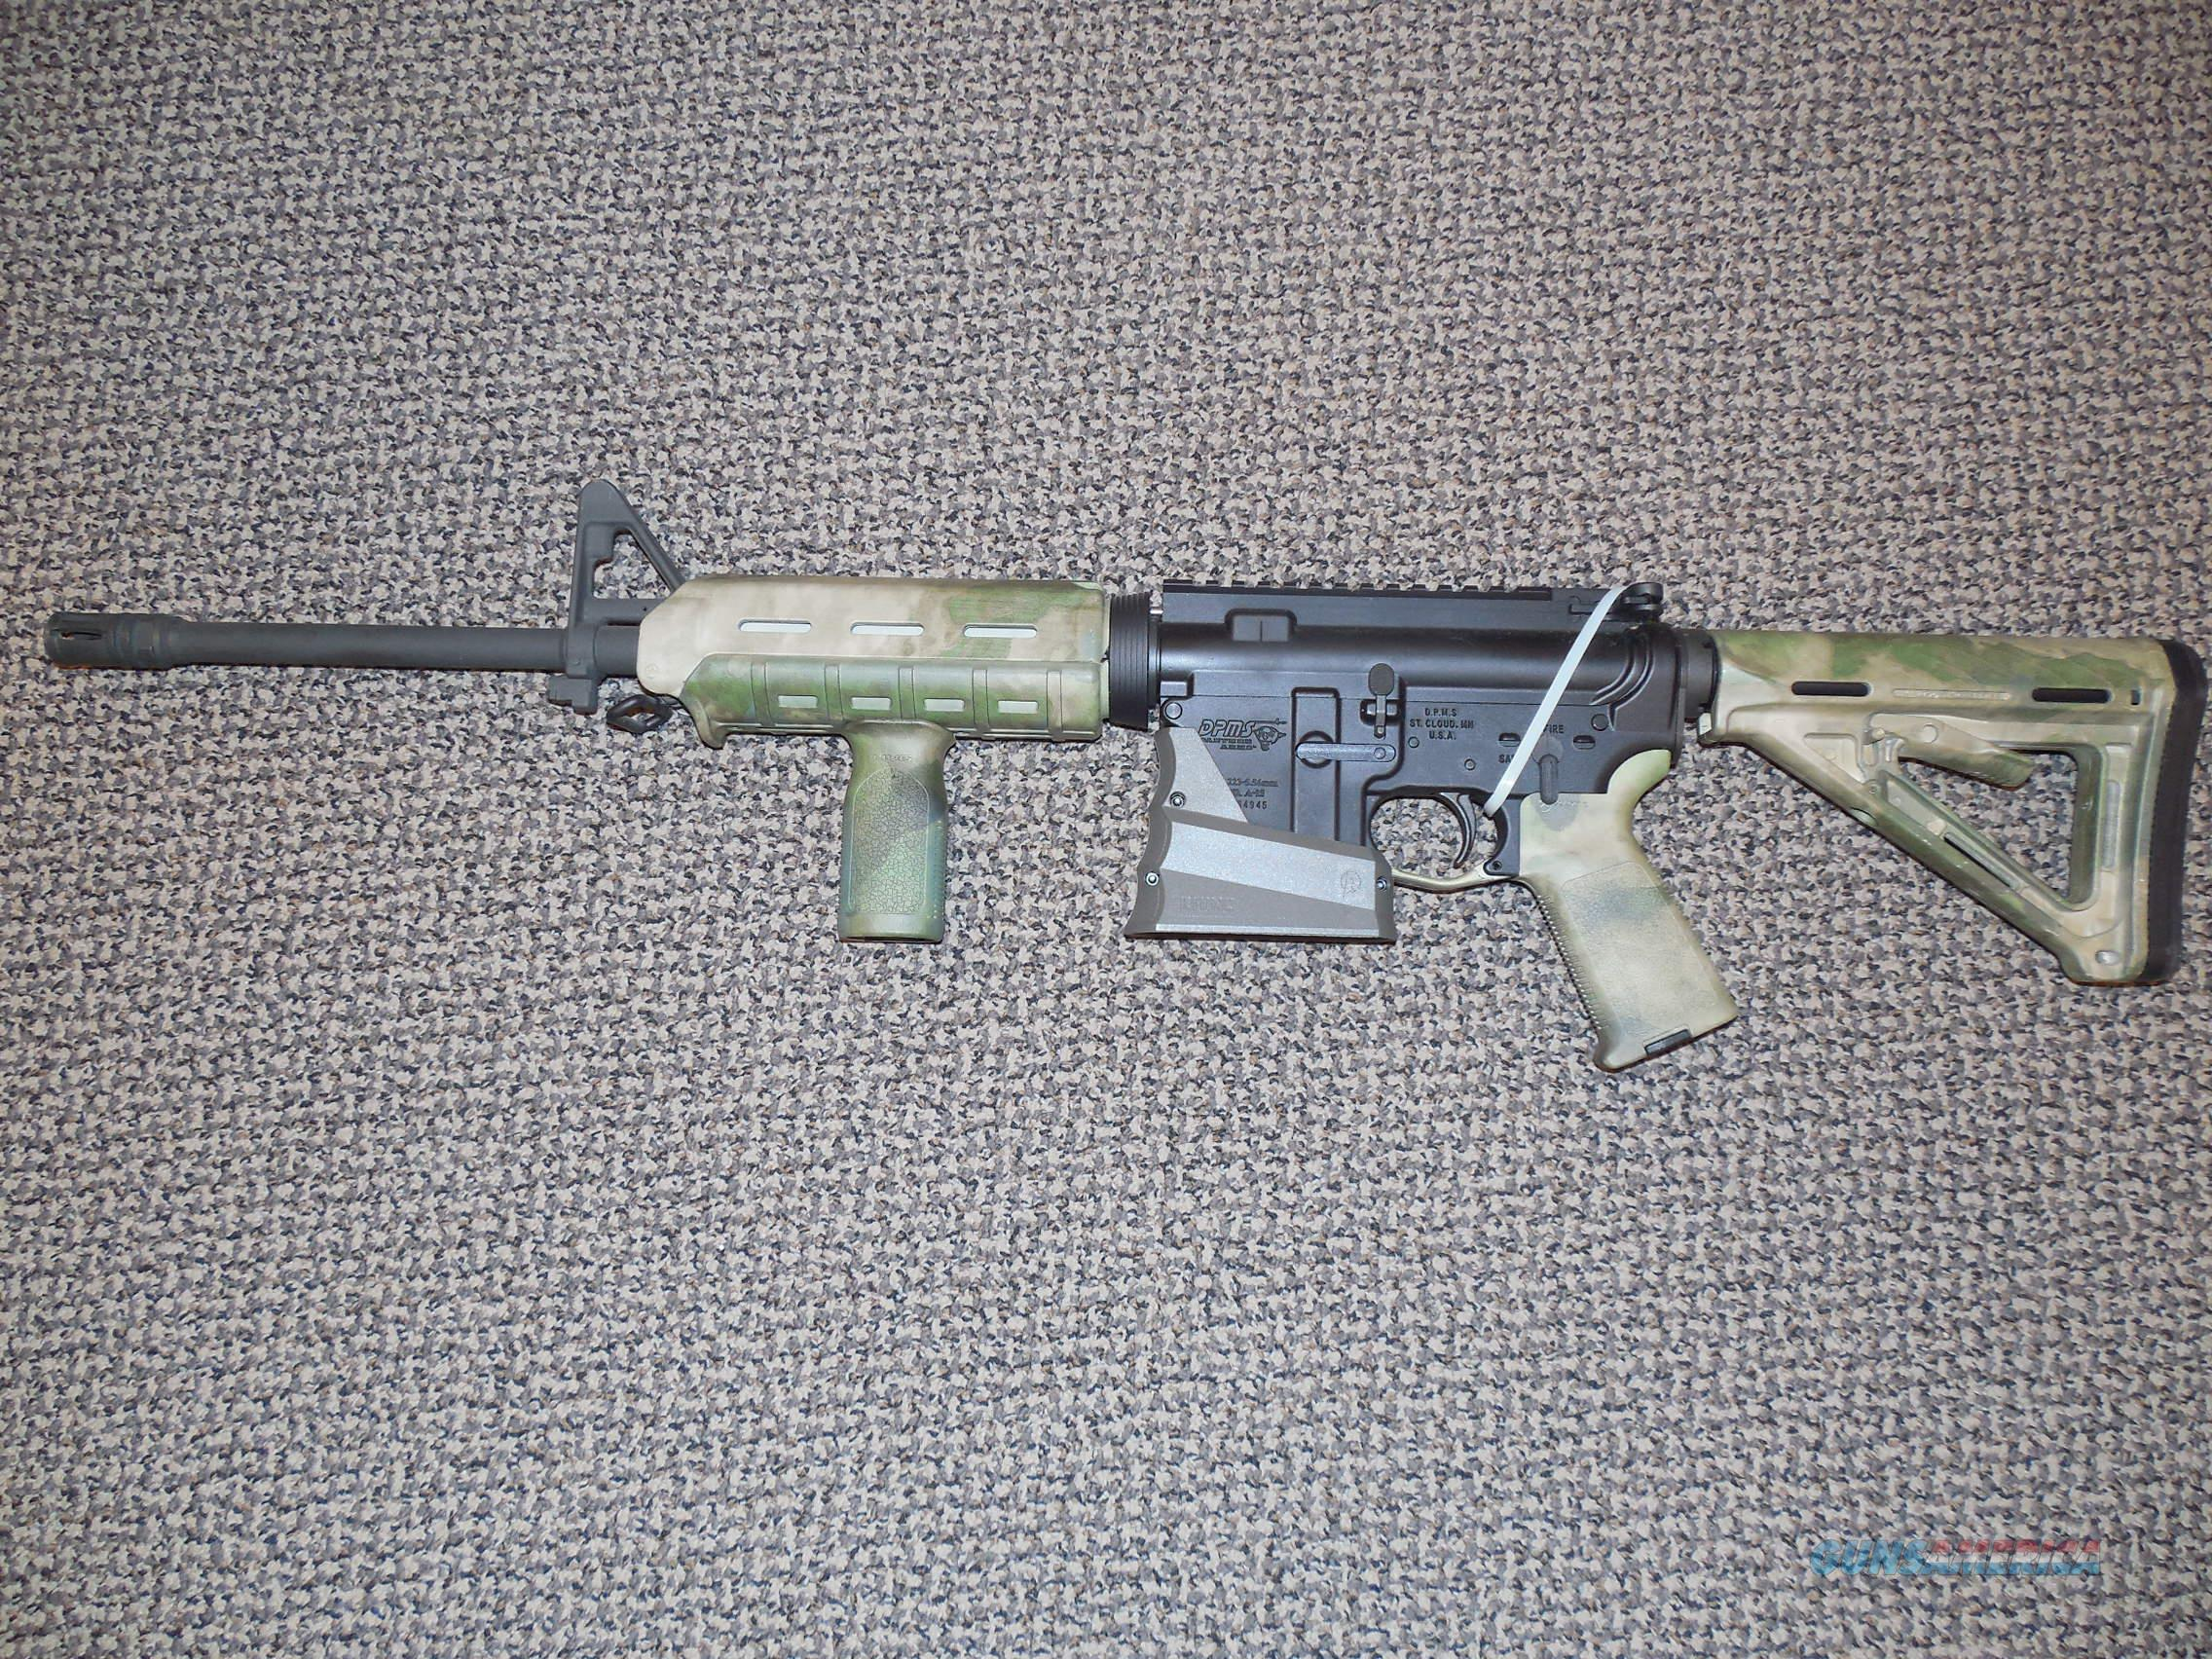 dpms a (m) carbine with camo moe furniture for sale - dpms a (m) carbine with camo moe furniture guns  rifles